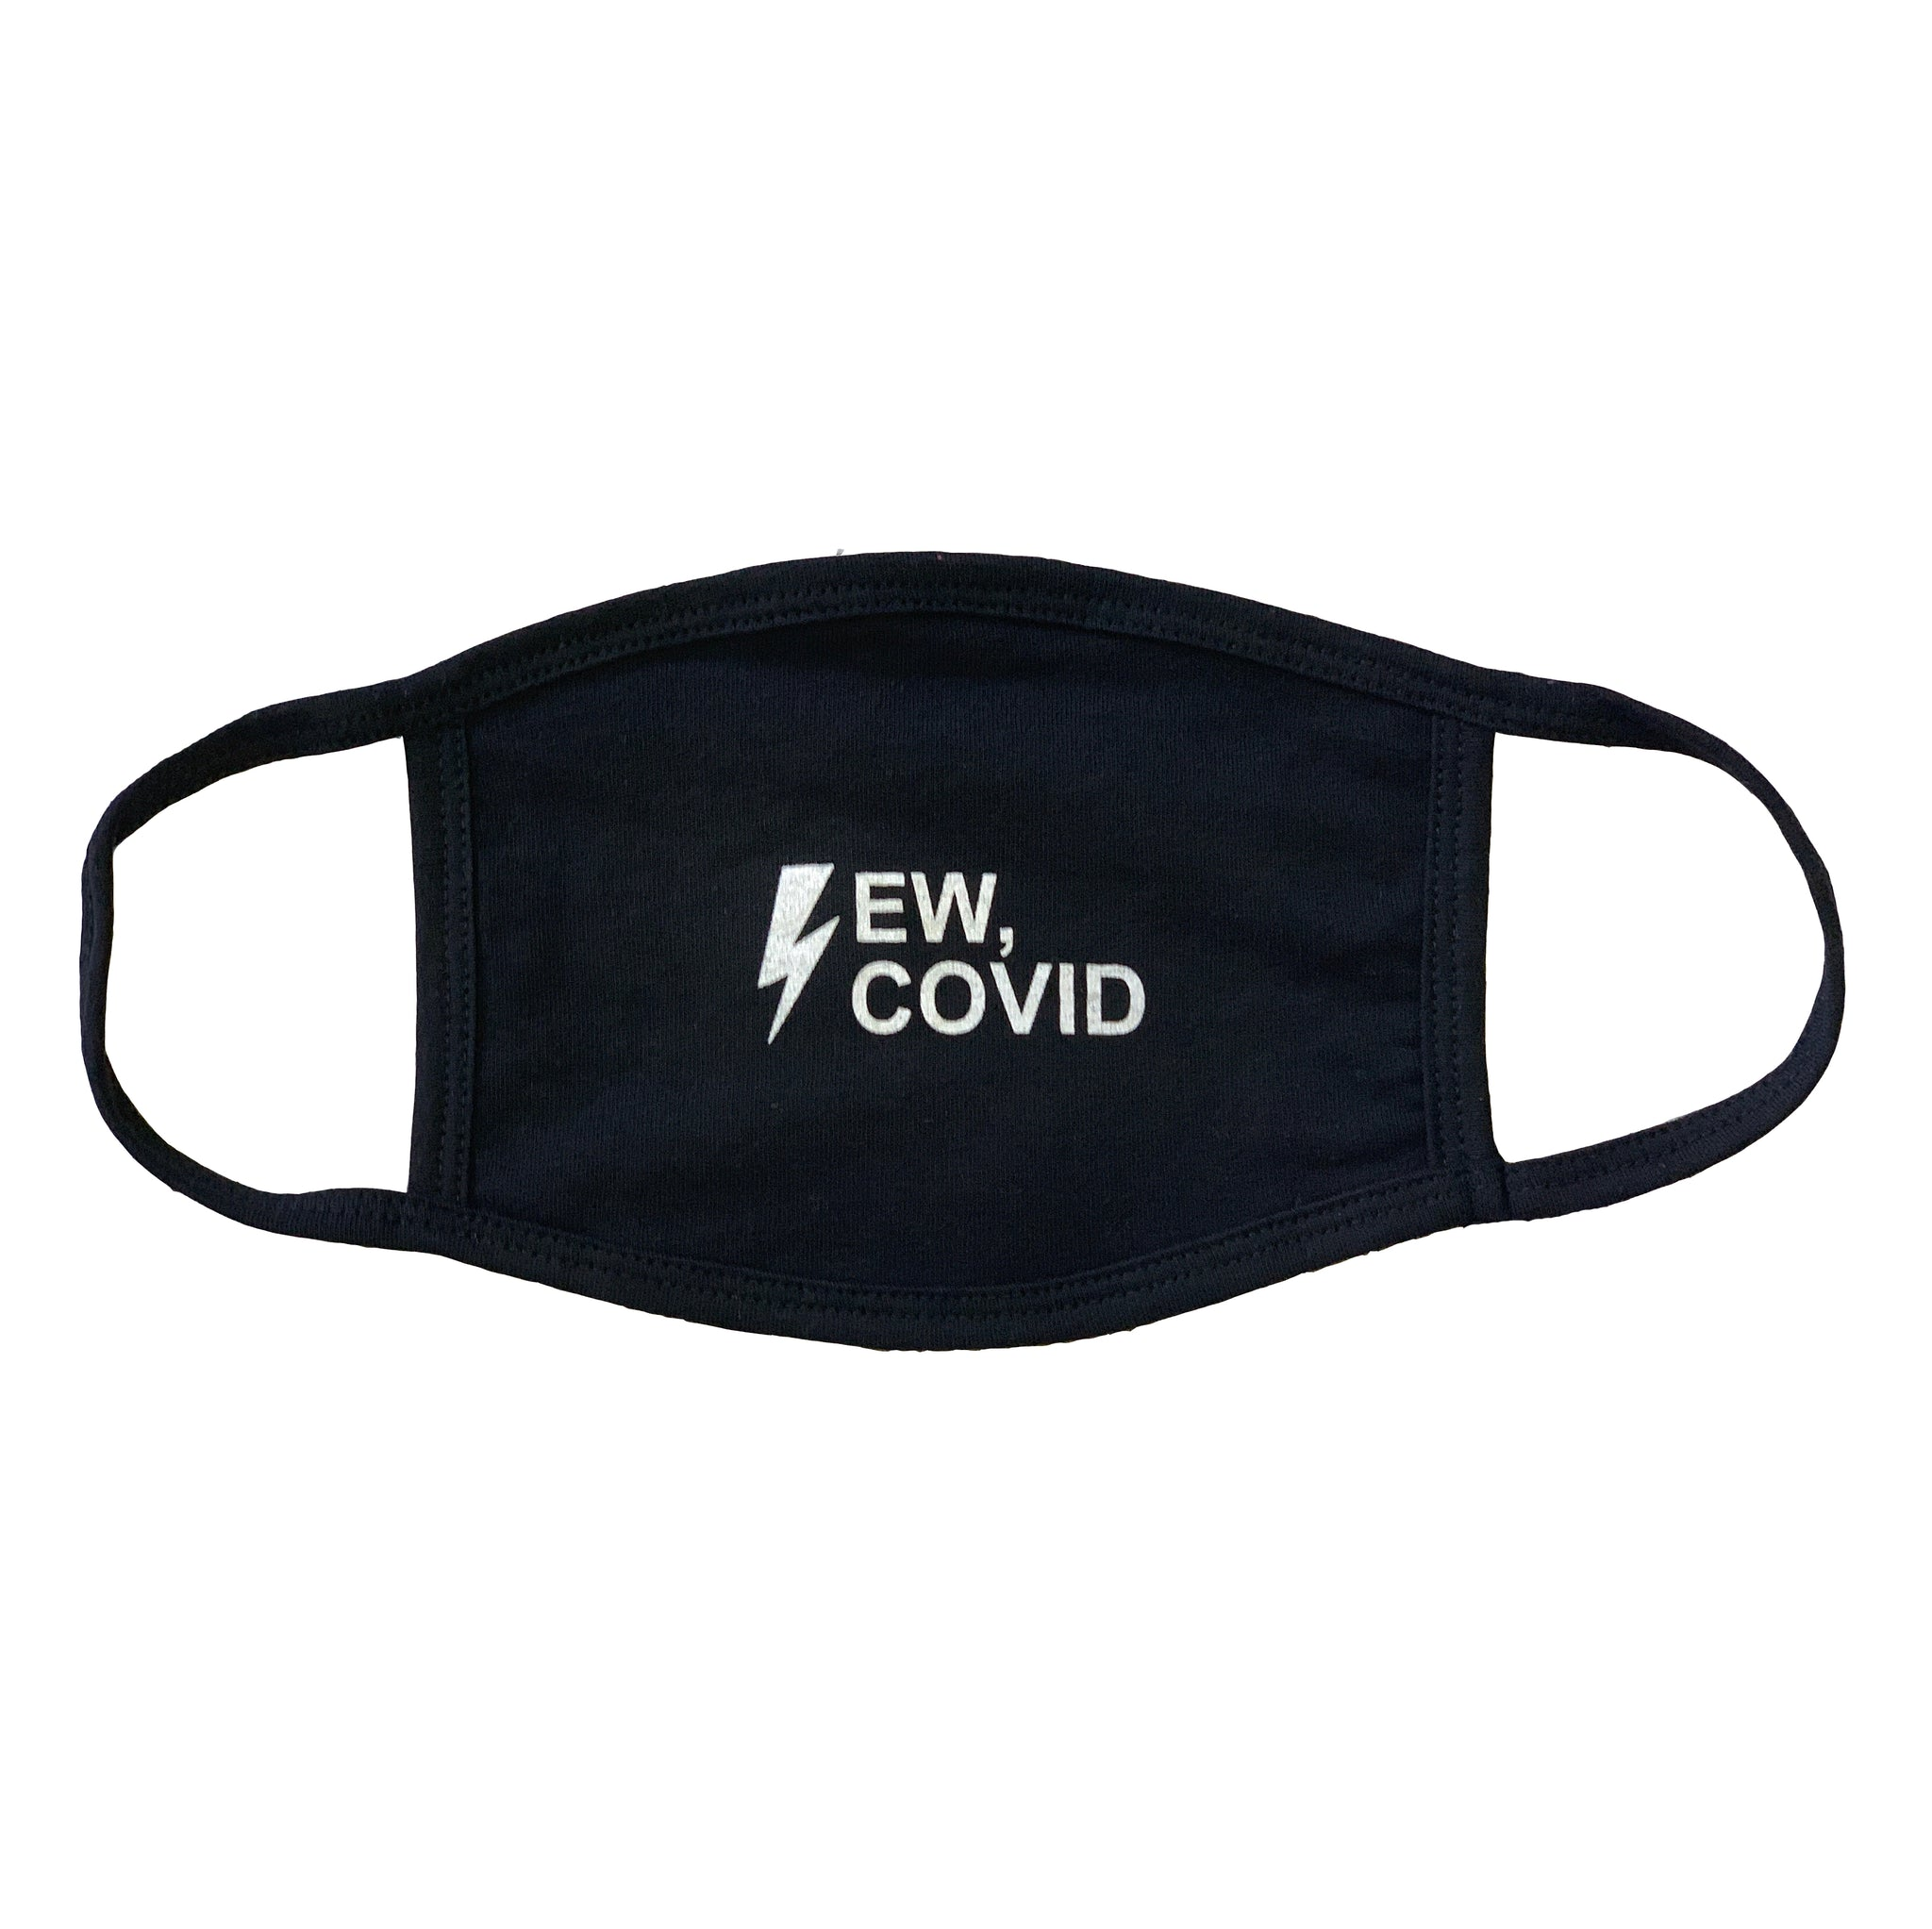 Ew Covid - Ear Loop Face Mask